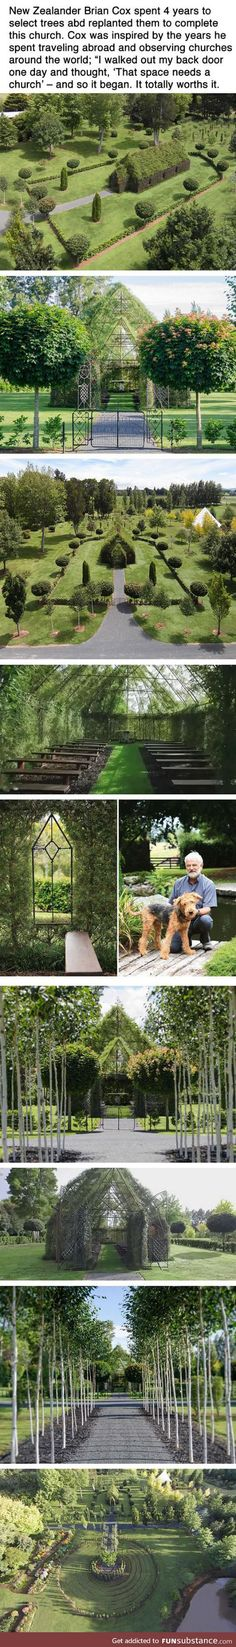 This Man Spent Four Years Using Trees To Grow A Church